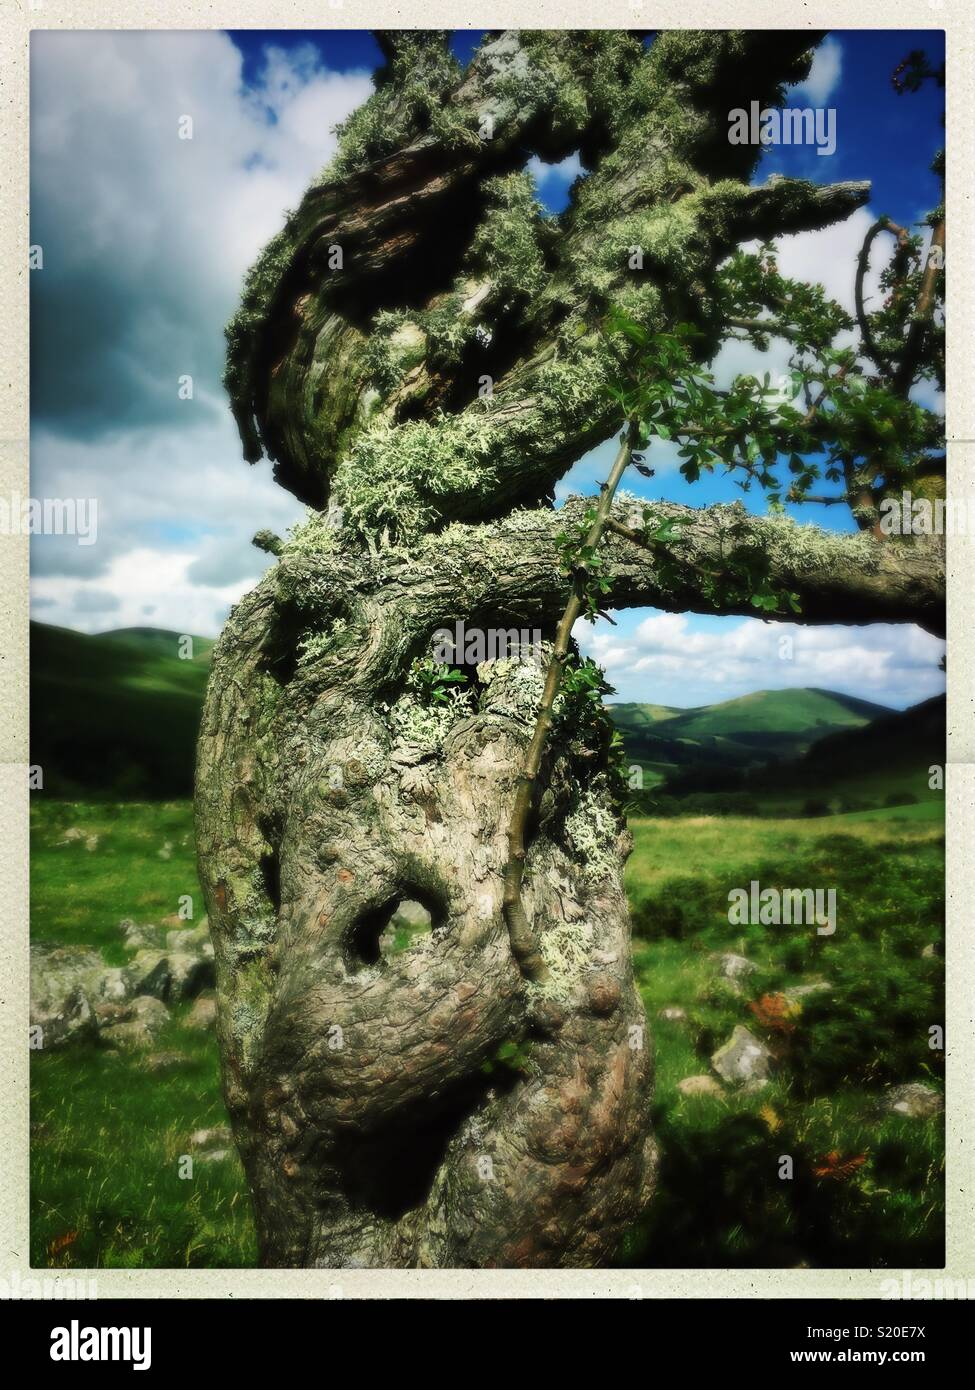 Ancient wind blown tree with contorted branches and a belly button in it's trunk - Stock Image